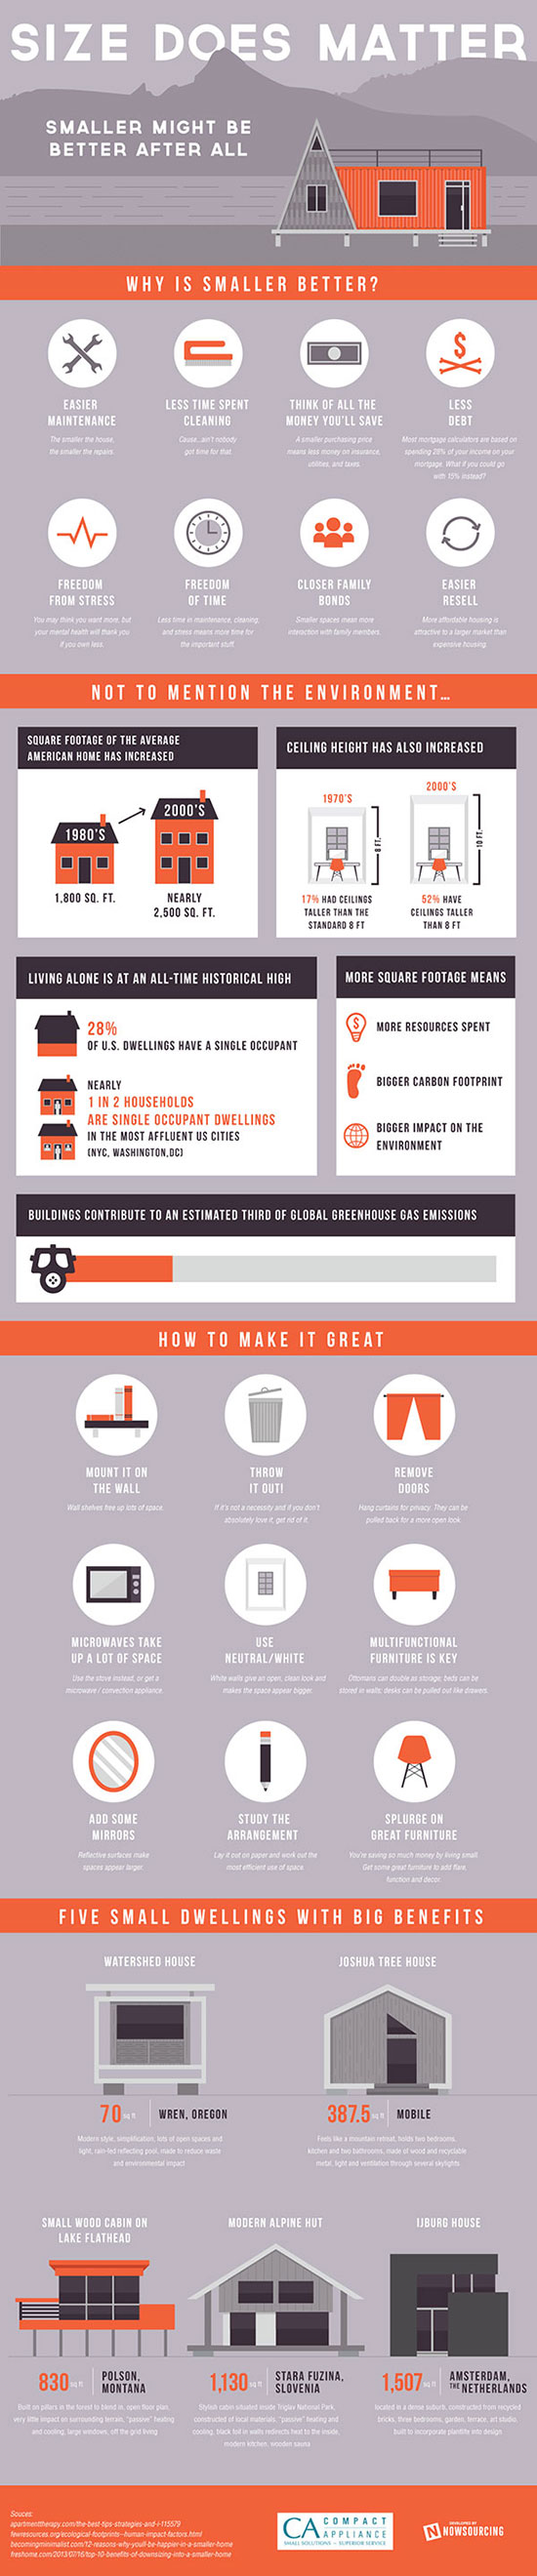 Compact Living Infographic - Why Small Living Might Be A Better For You